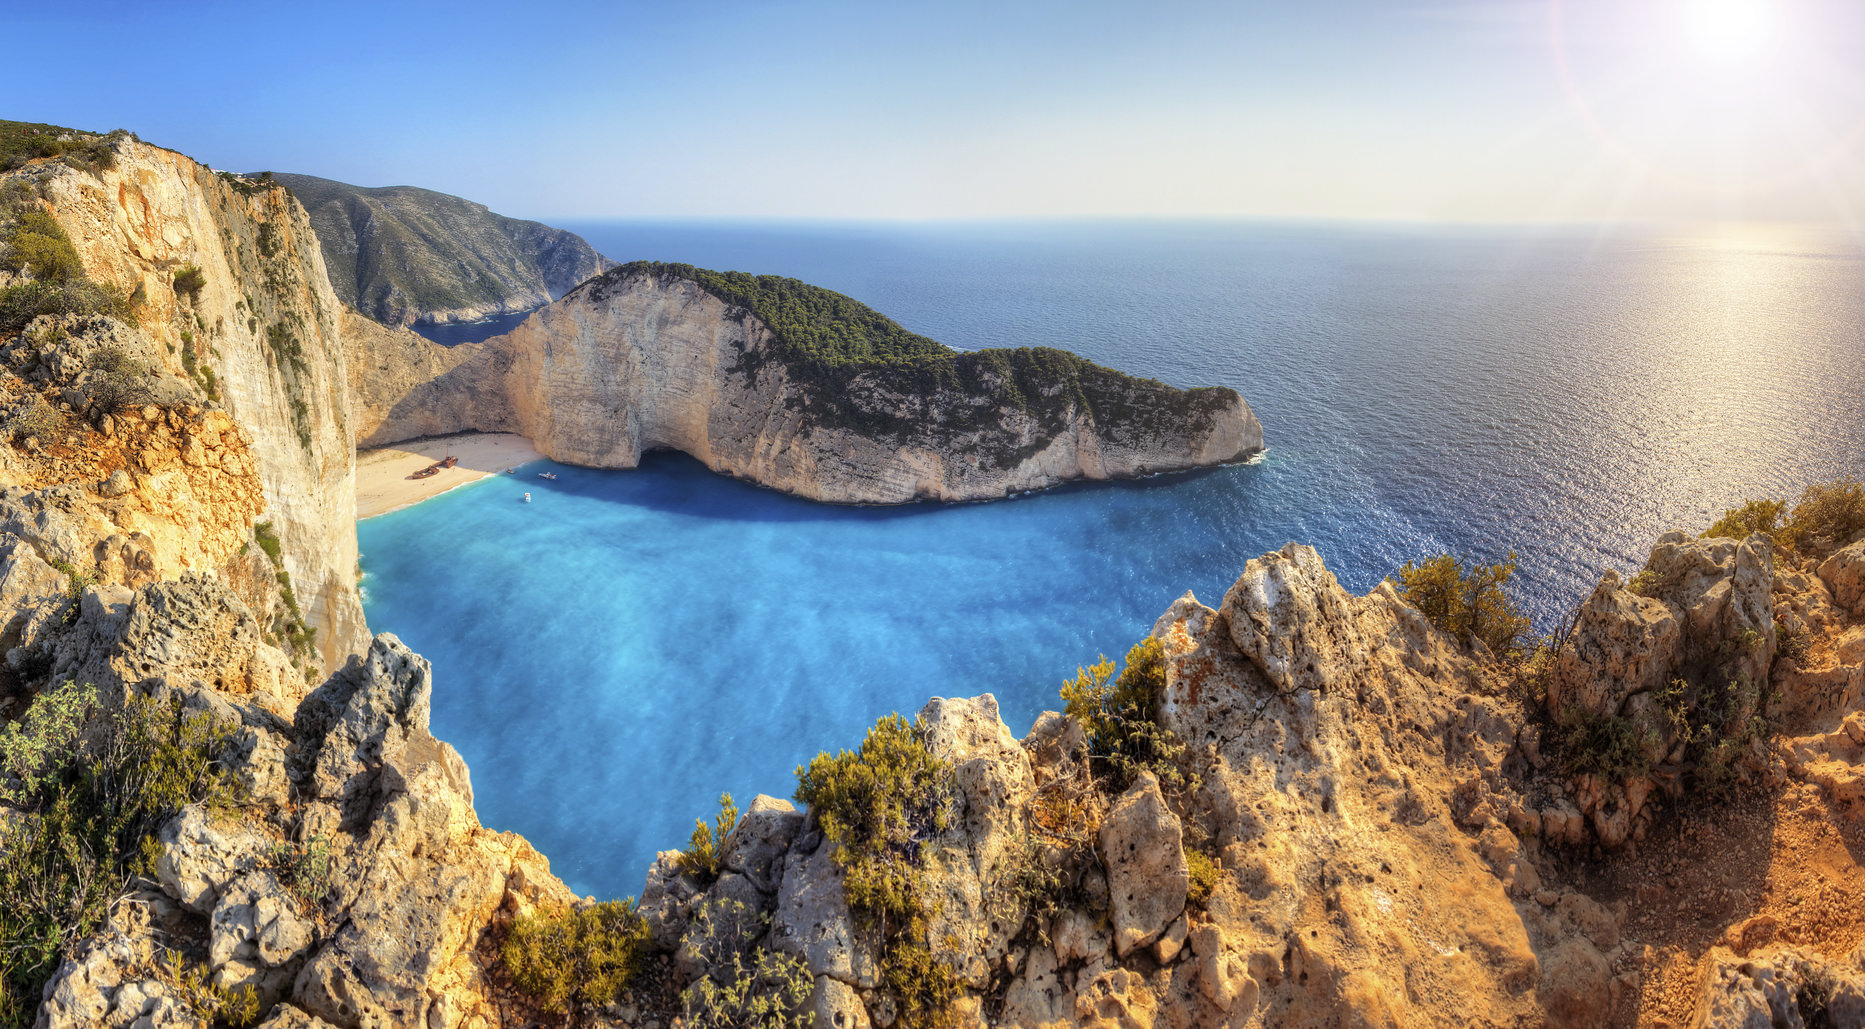 Beautiful panorama of Navagio or Shipwreck beach on the island of Zakynthos in the afternoon